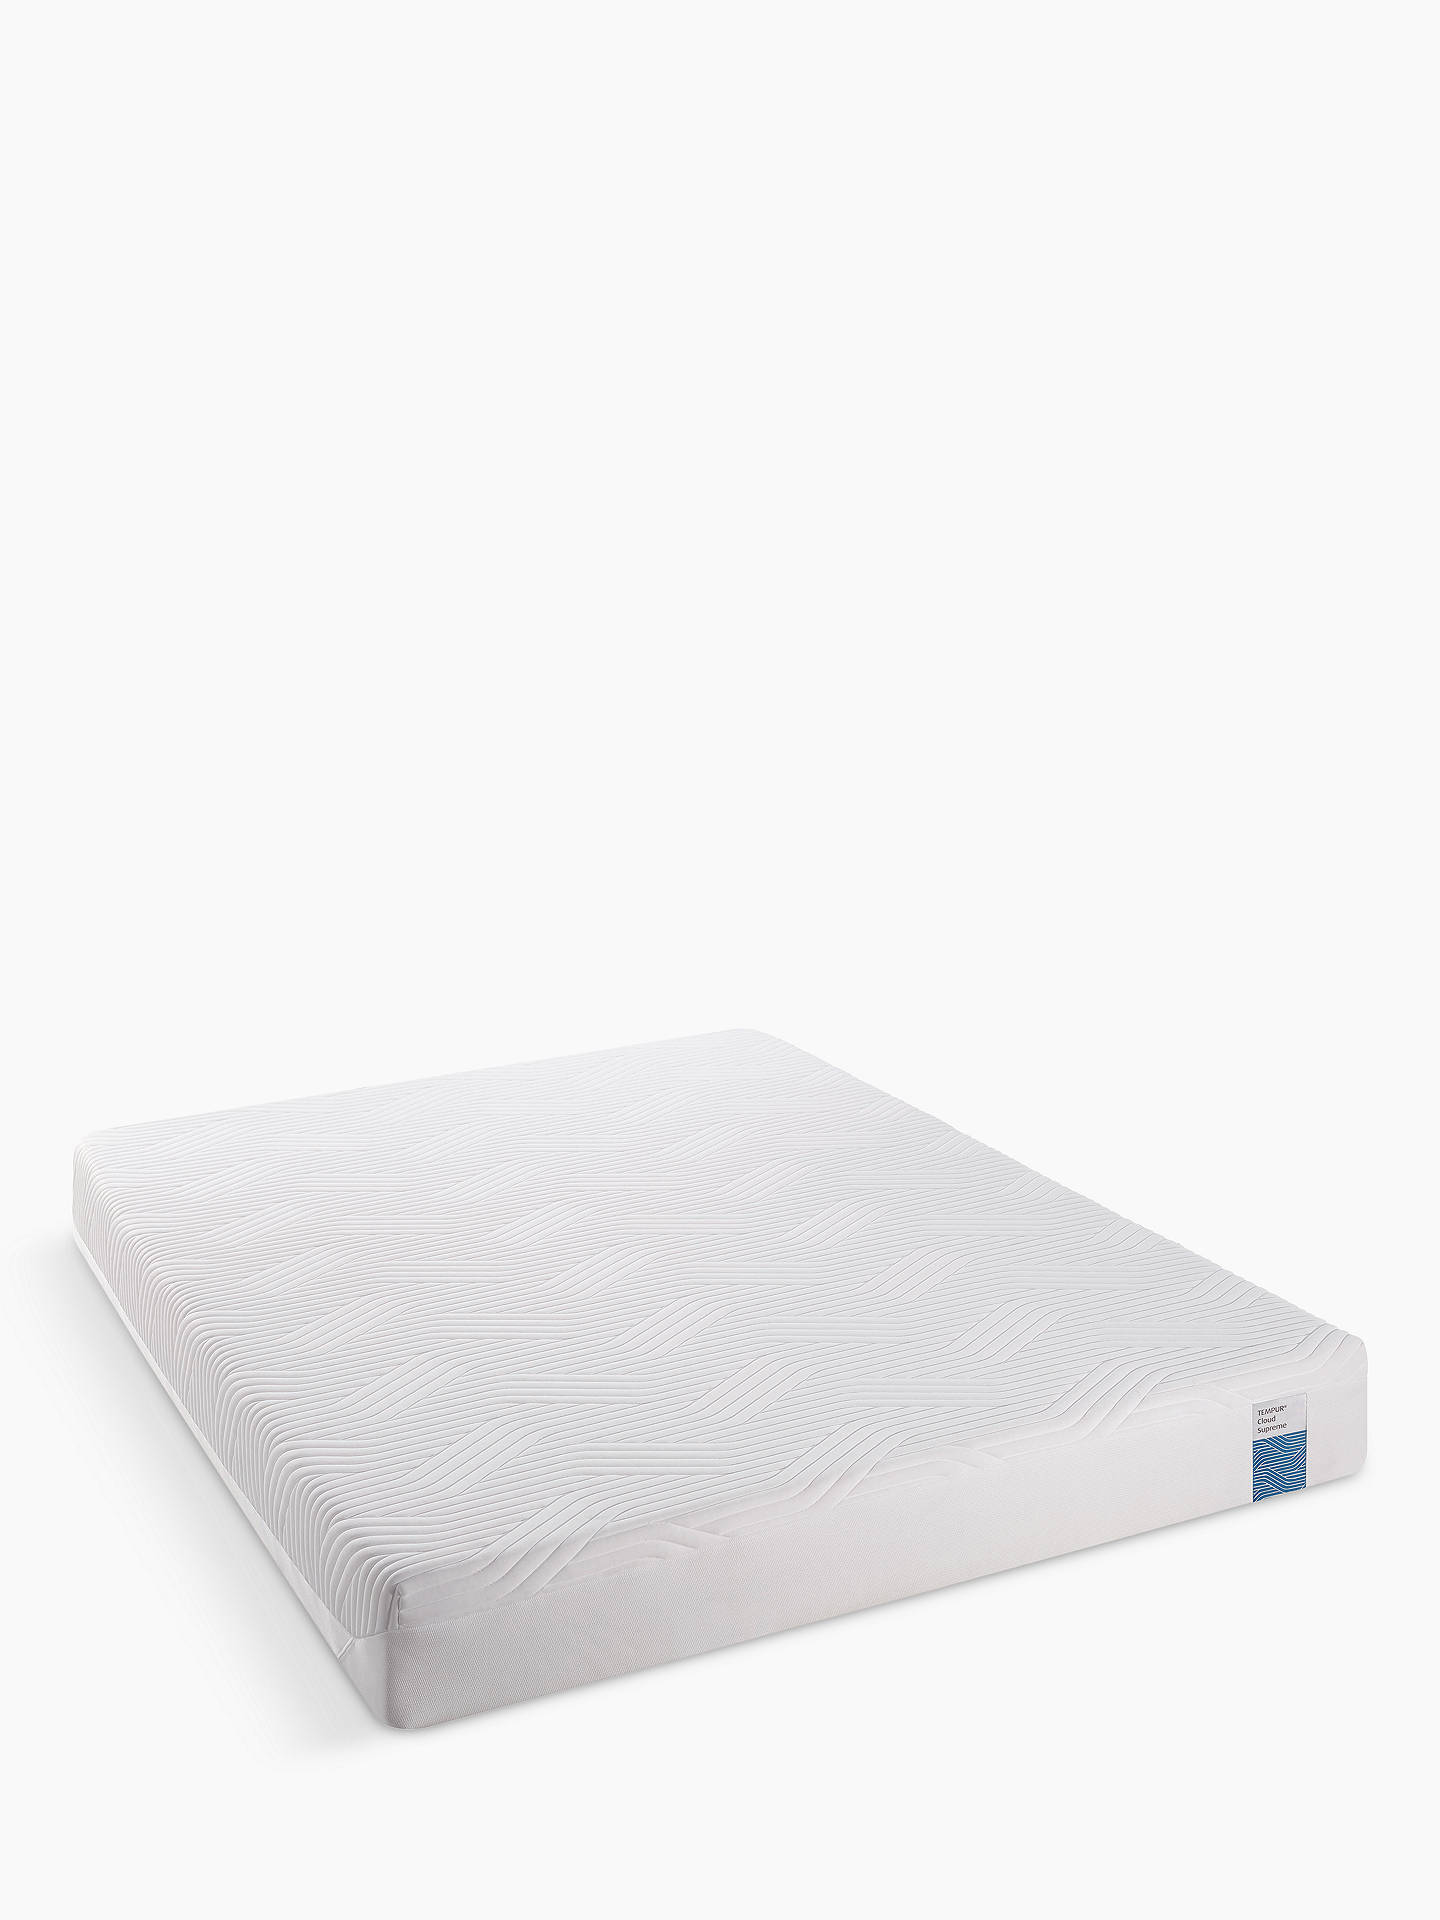 Buy Tempur Cloud Supreme 21 Memory Foam Mattress, Soft, King Size Online at johnlewis.com